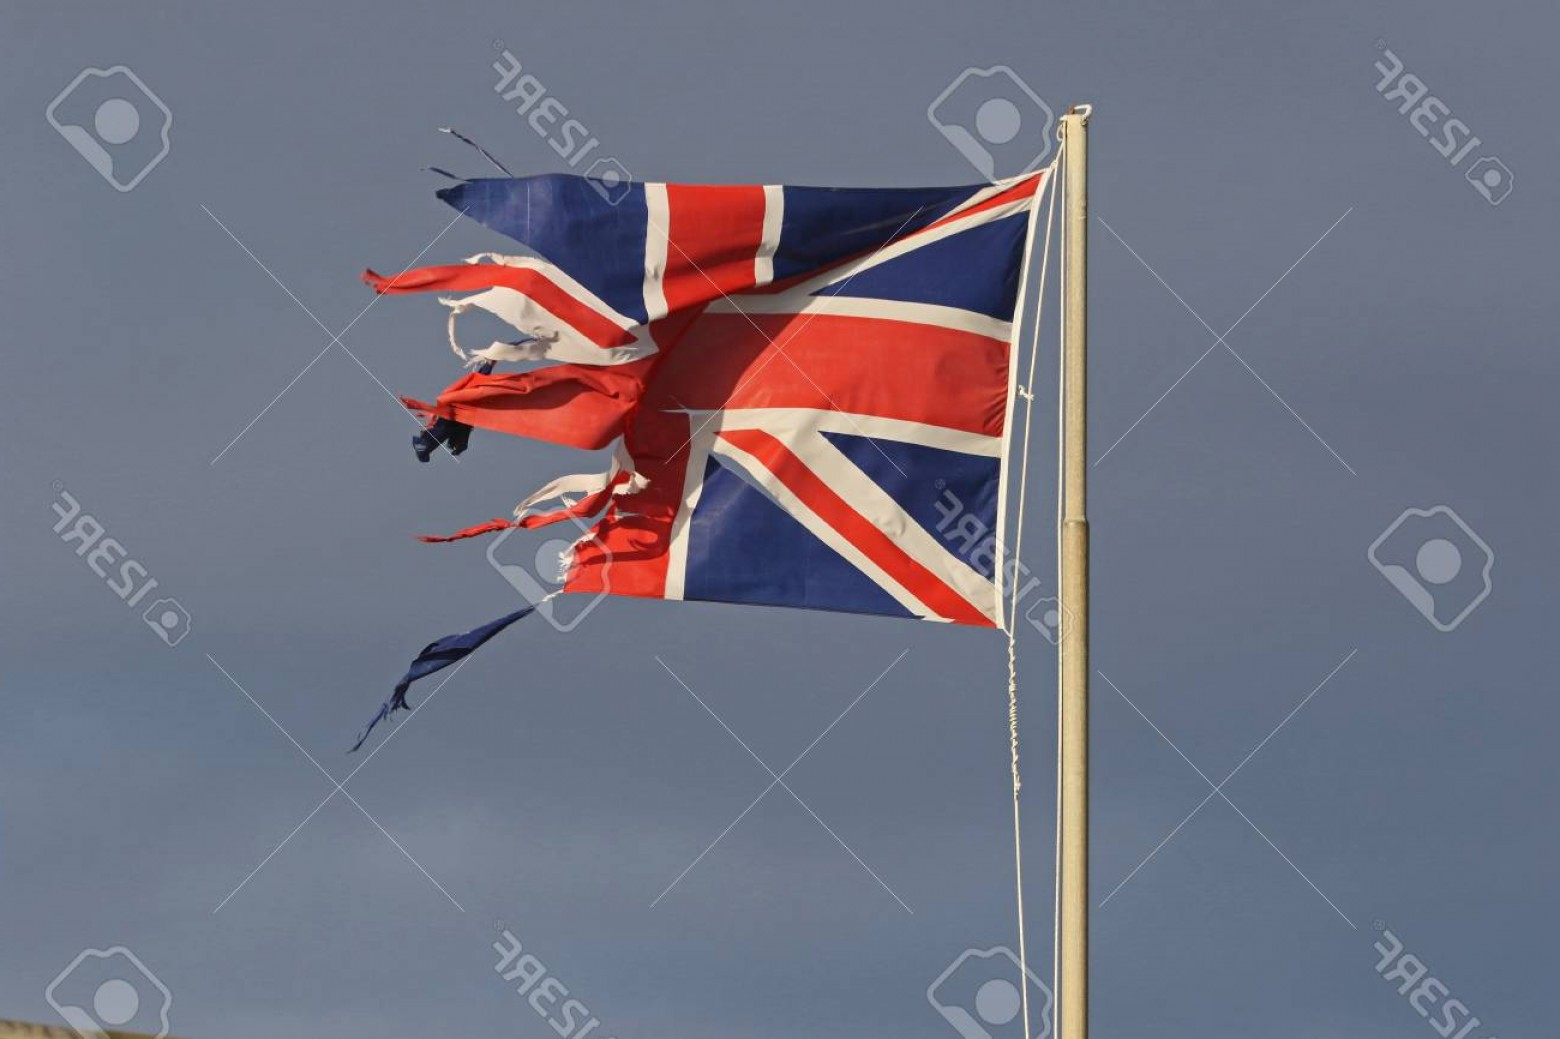 Union Jack Flag Tattered Vector: Photoweather Worn British Flag Or Union Jack Torn And Tattered Flying In The Winter By The Sea In Italy